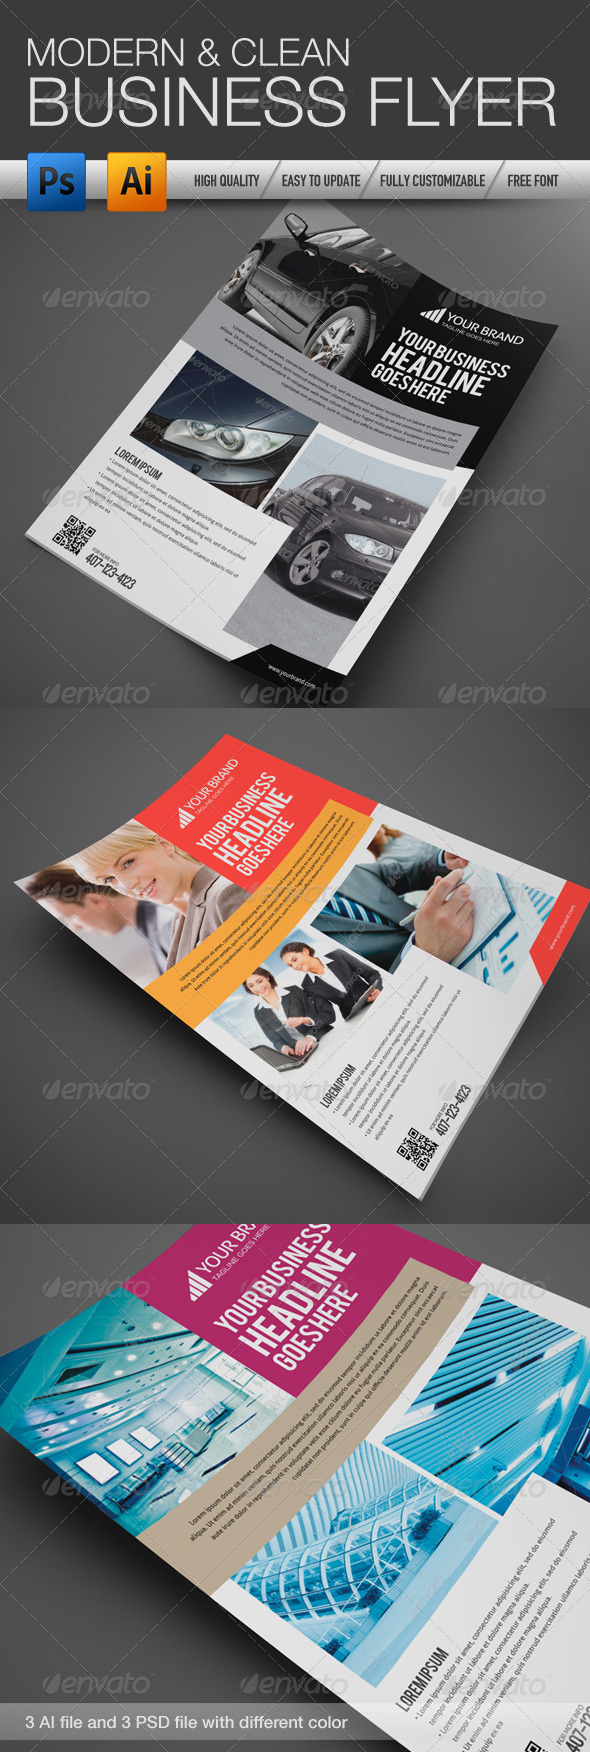 GraphicRiver Professional and Clean Business flyer 3 4344987